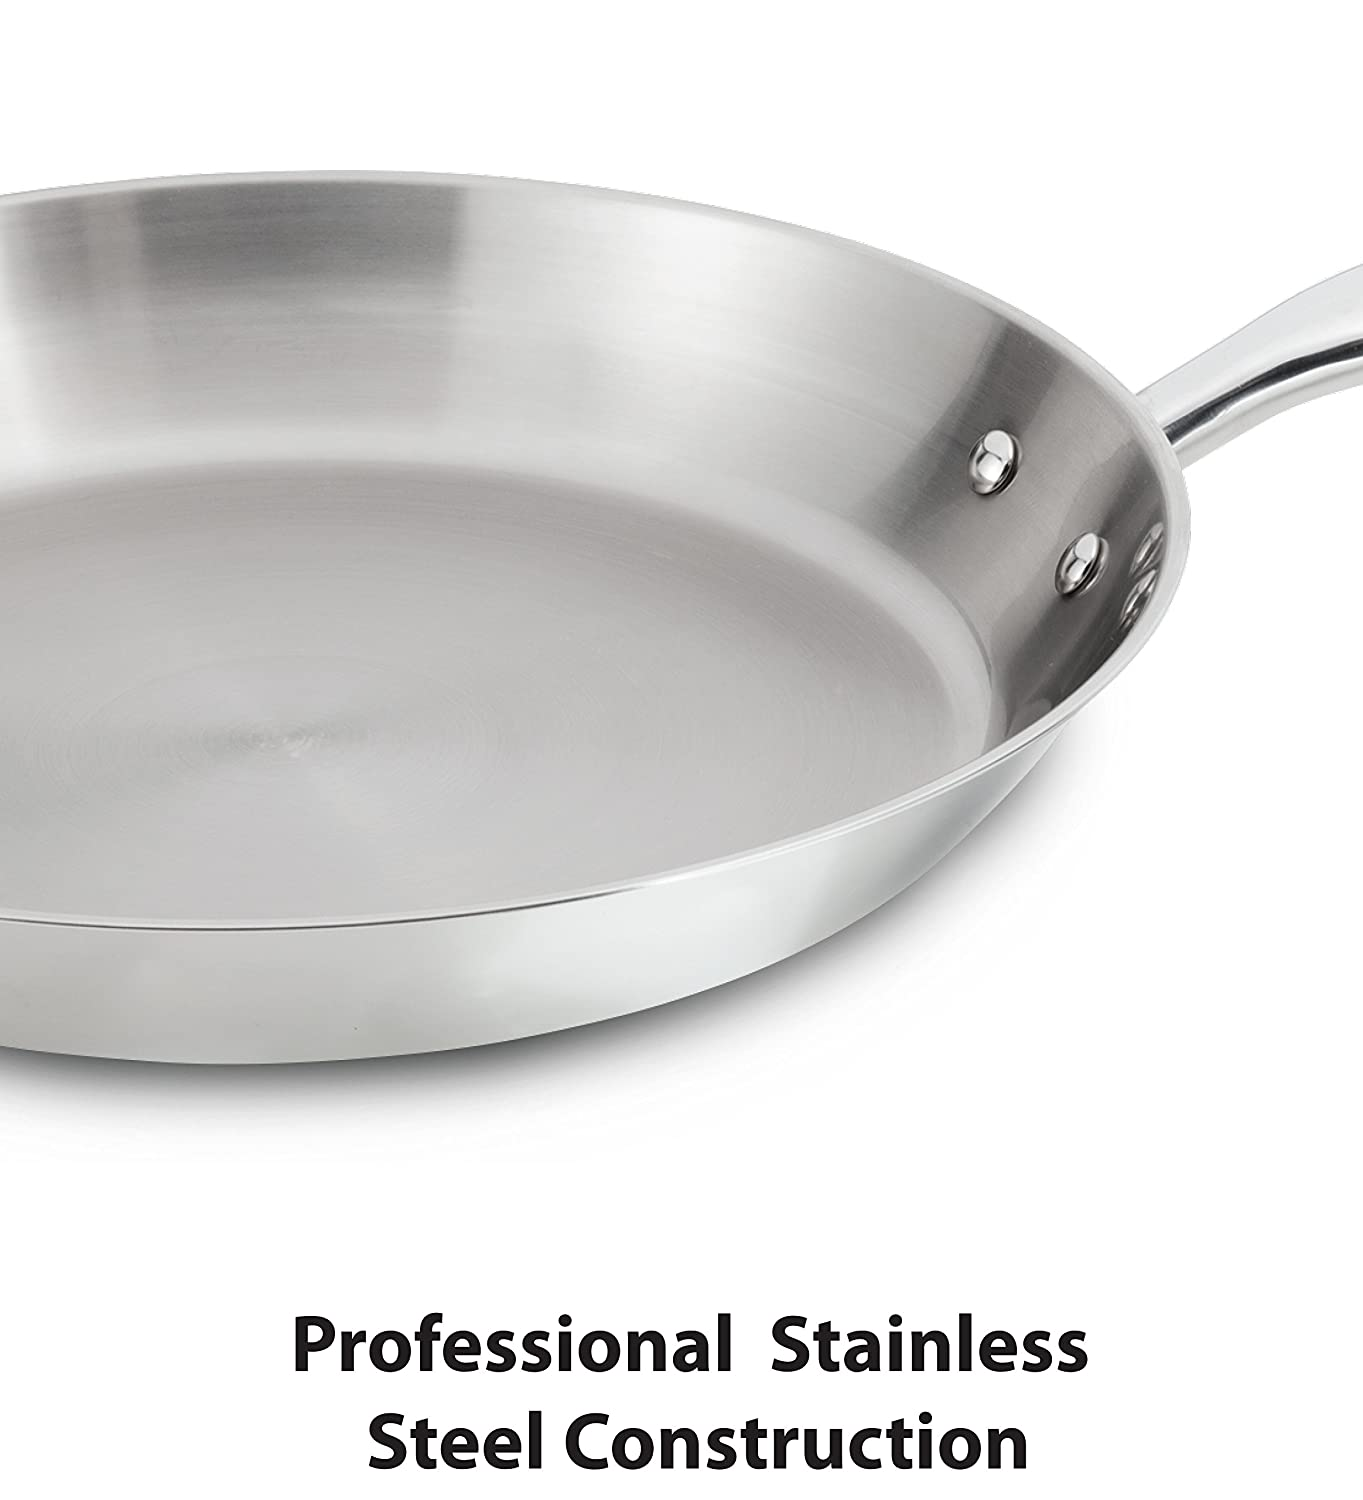 T-fal C836SA Ultimate Stainless Steel Copper-Bottom Heavy Gauge Multi-Layer Base Cookware Set Silver 10-Piece